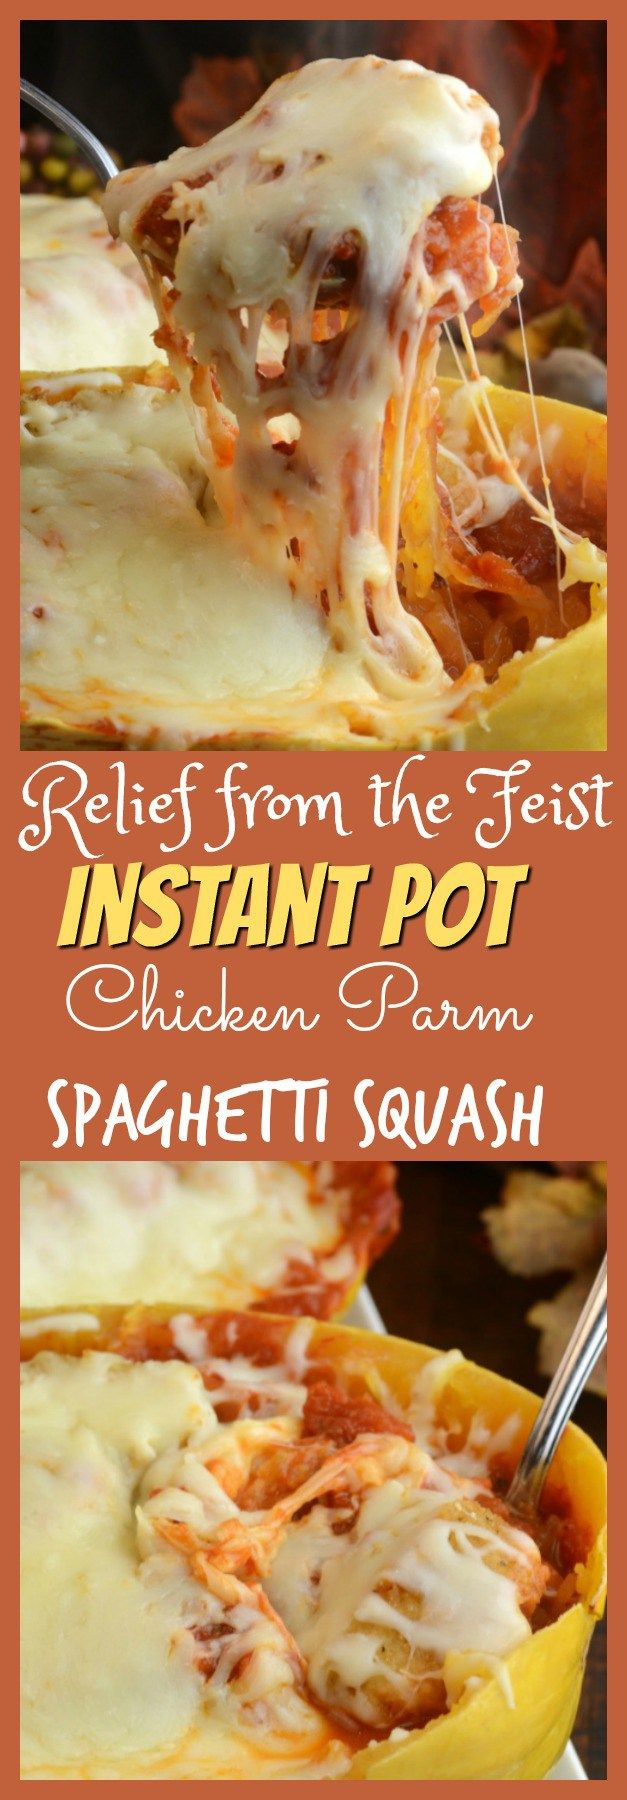 Relief From The Feast And Instant Pot Chicken Parm Spaghetti Squash